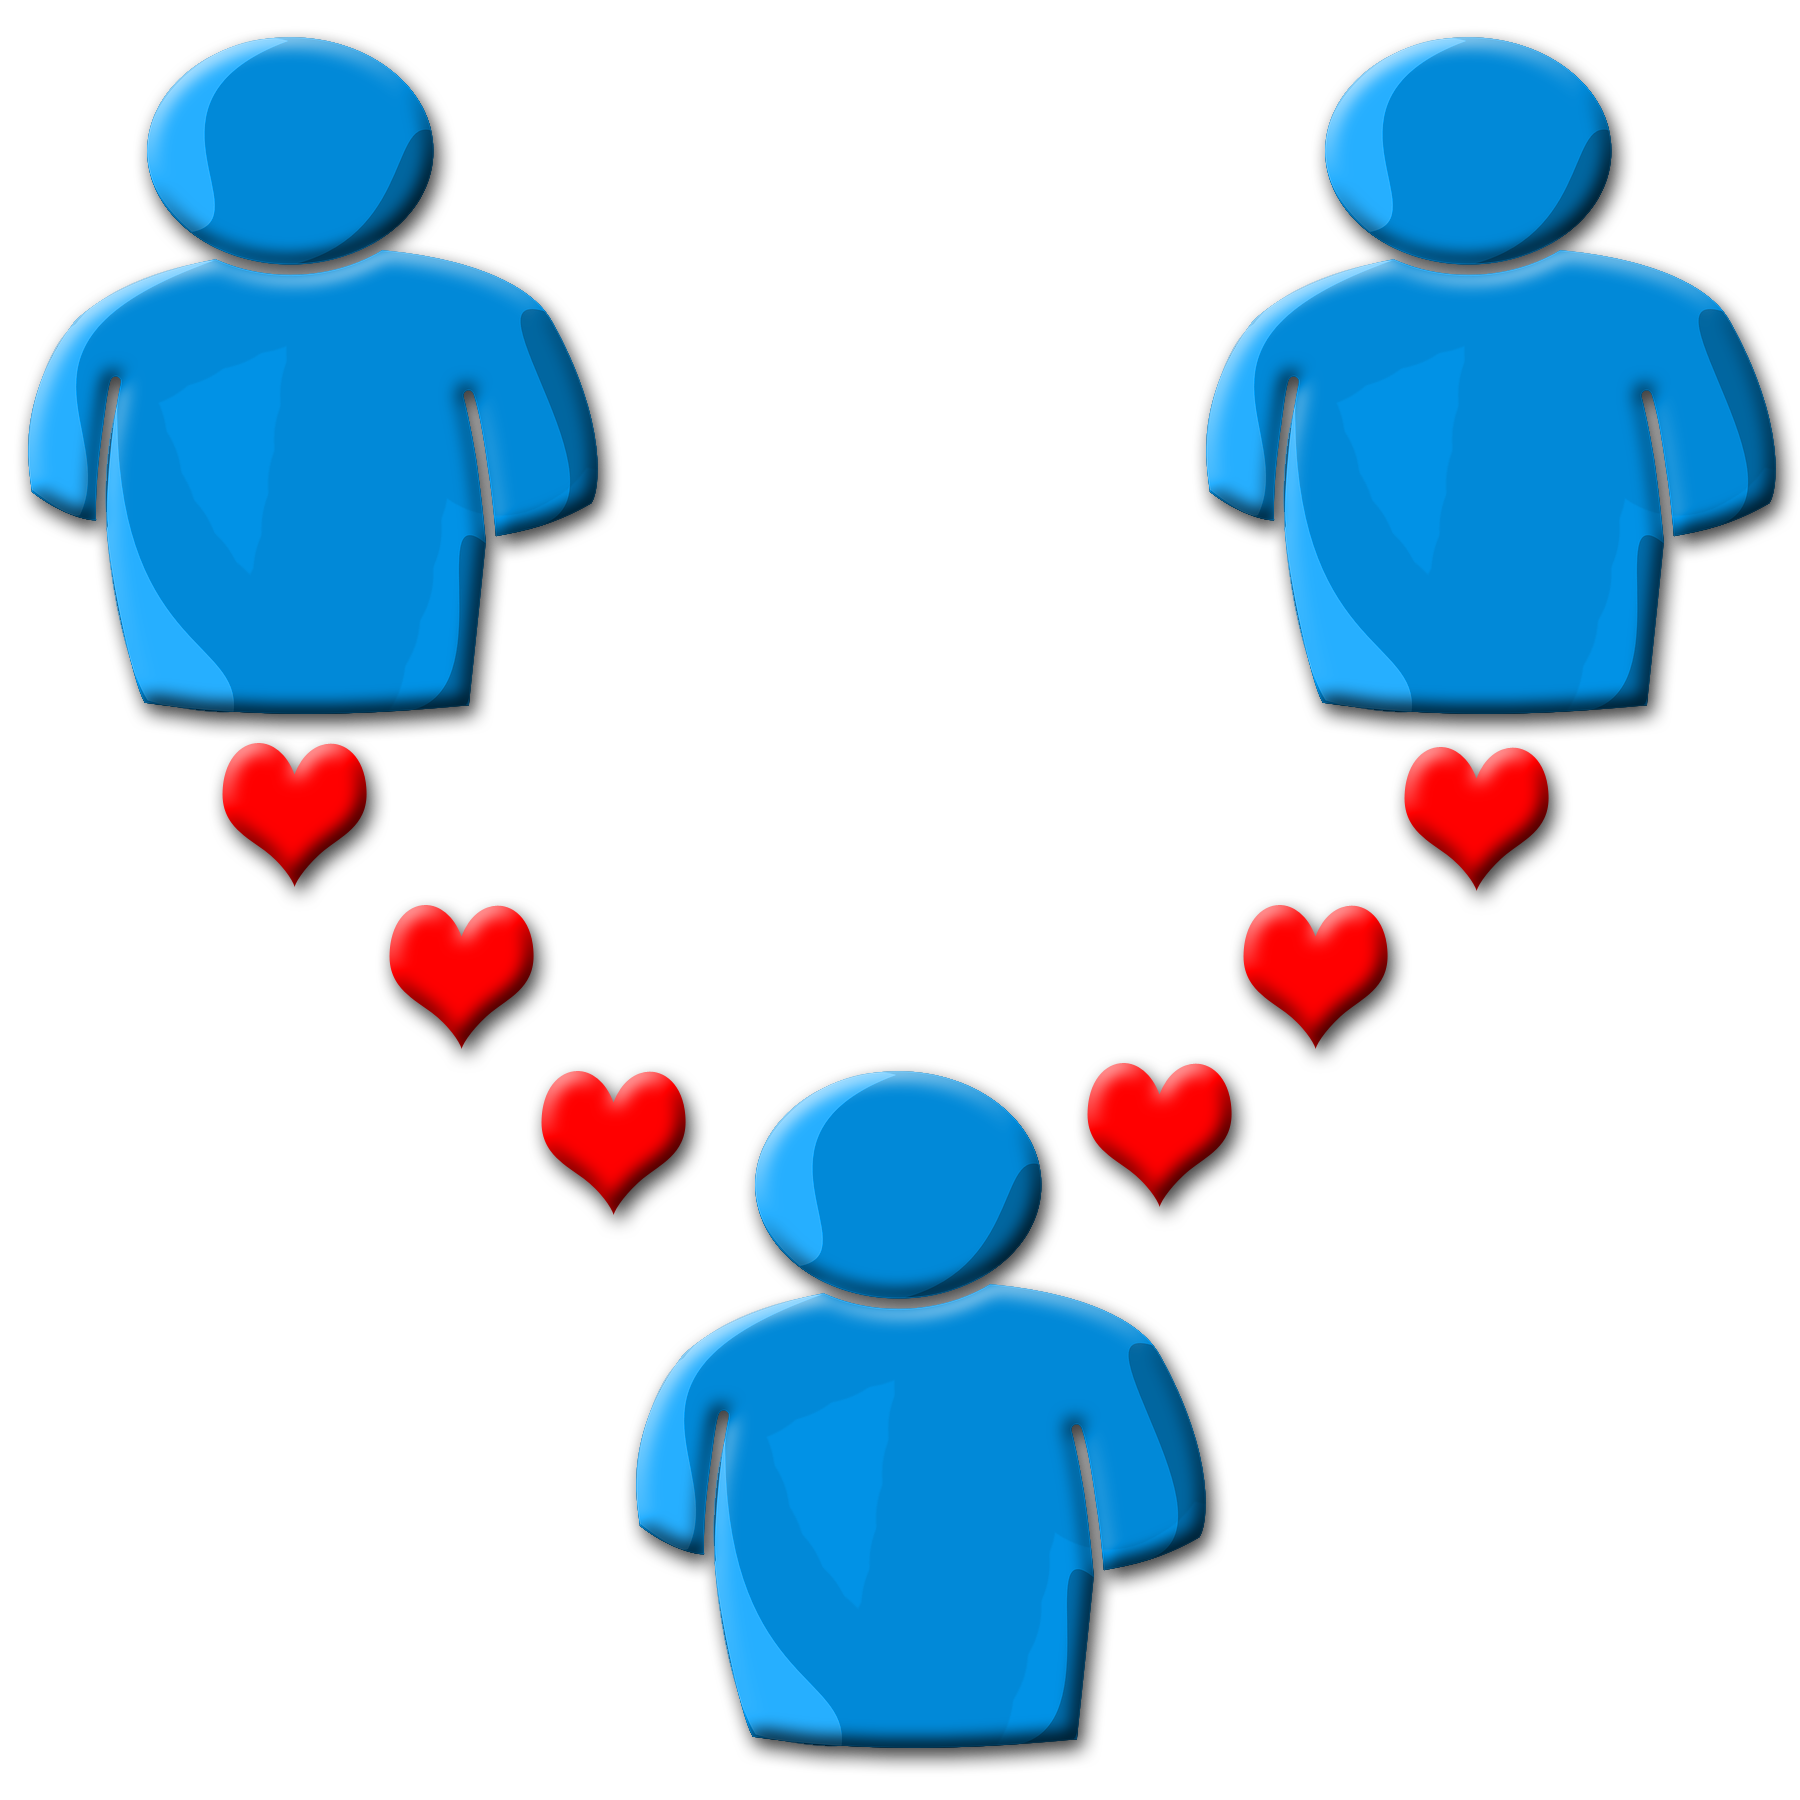 Conversation clipart 3 person. The inn between polyamory